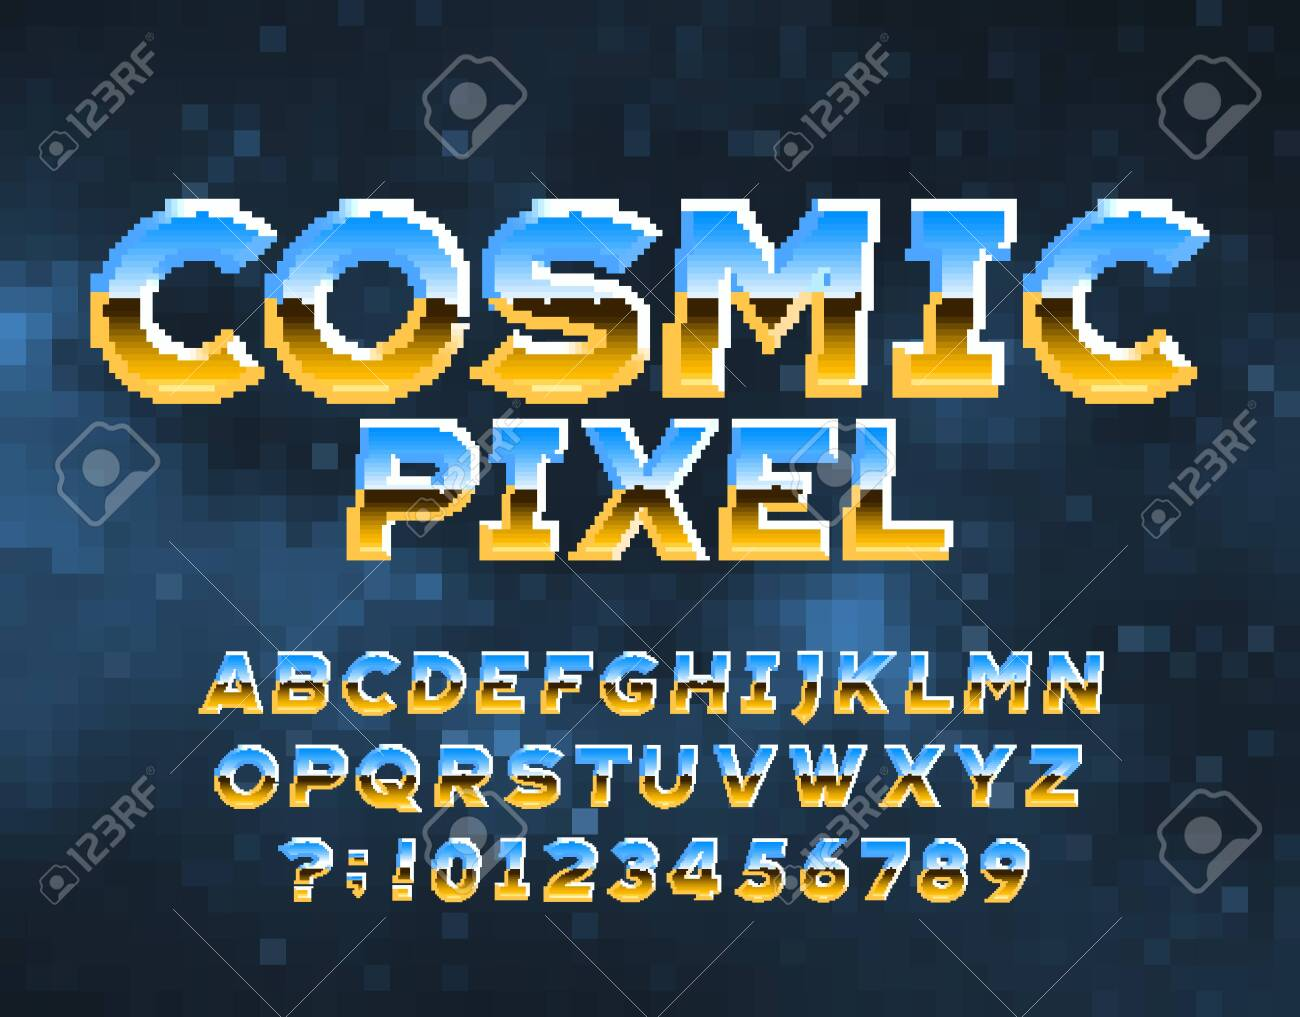 Cosmic Pixel alphabet font. Chrome effect letters and numbers. Abstract pixel background. 80s arcade video game typescript. - 151464347